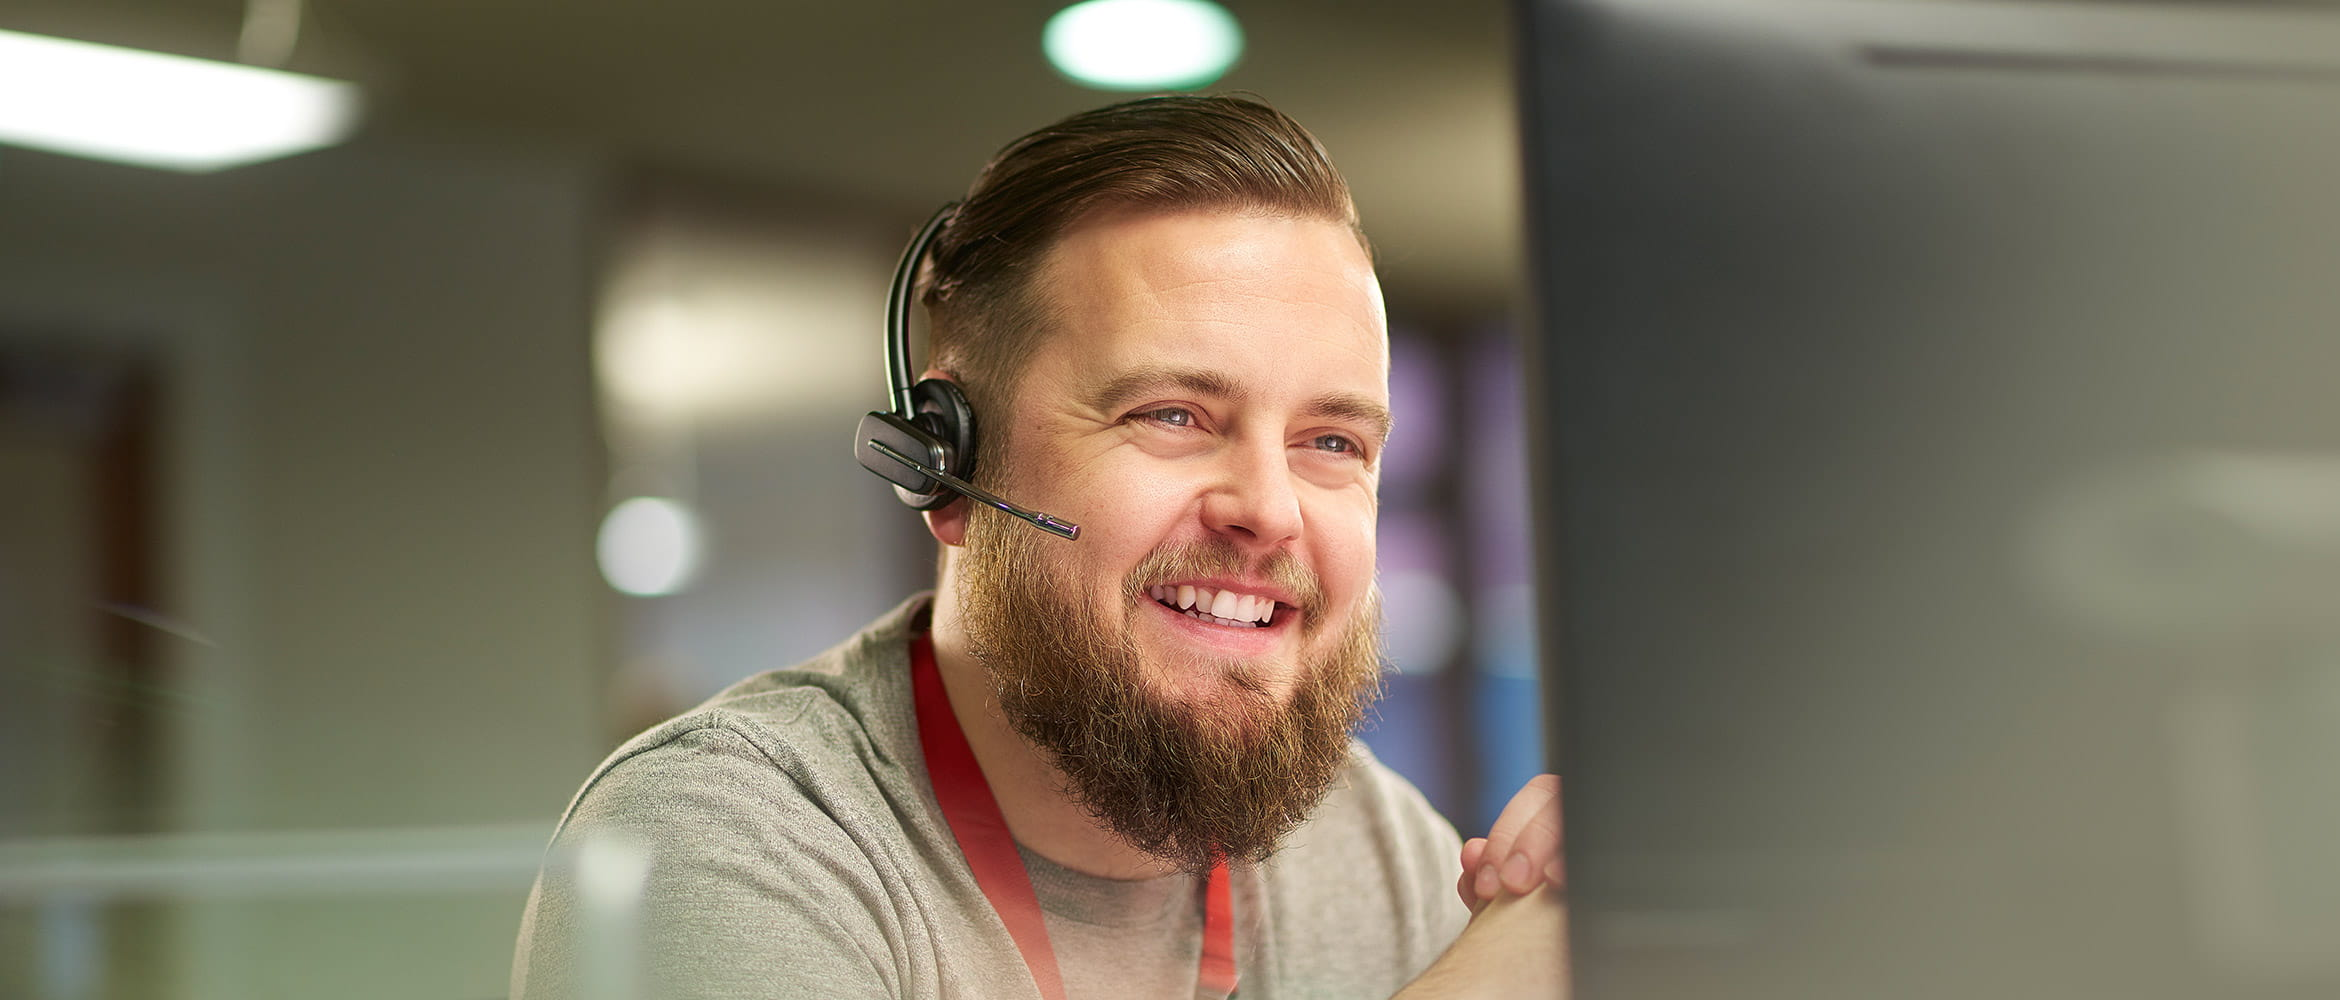 Smiling man talking on a hands free headset and looking at a computer screen